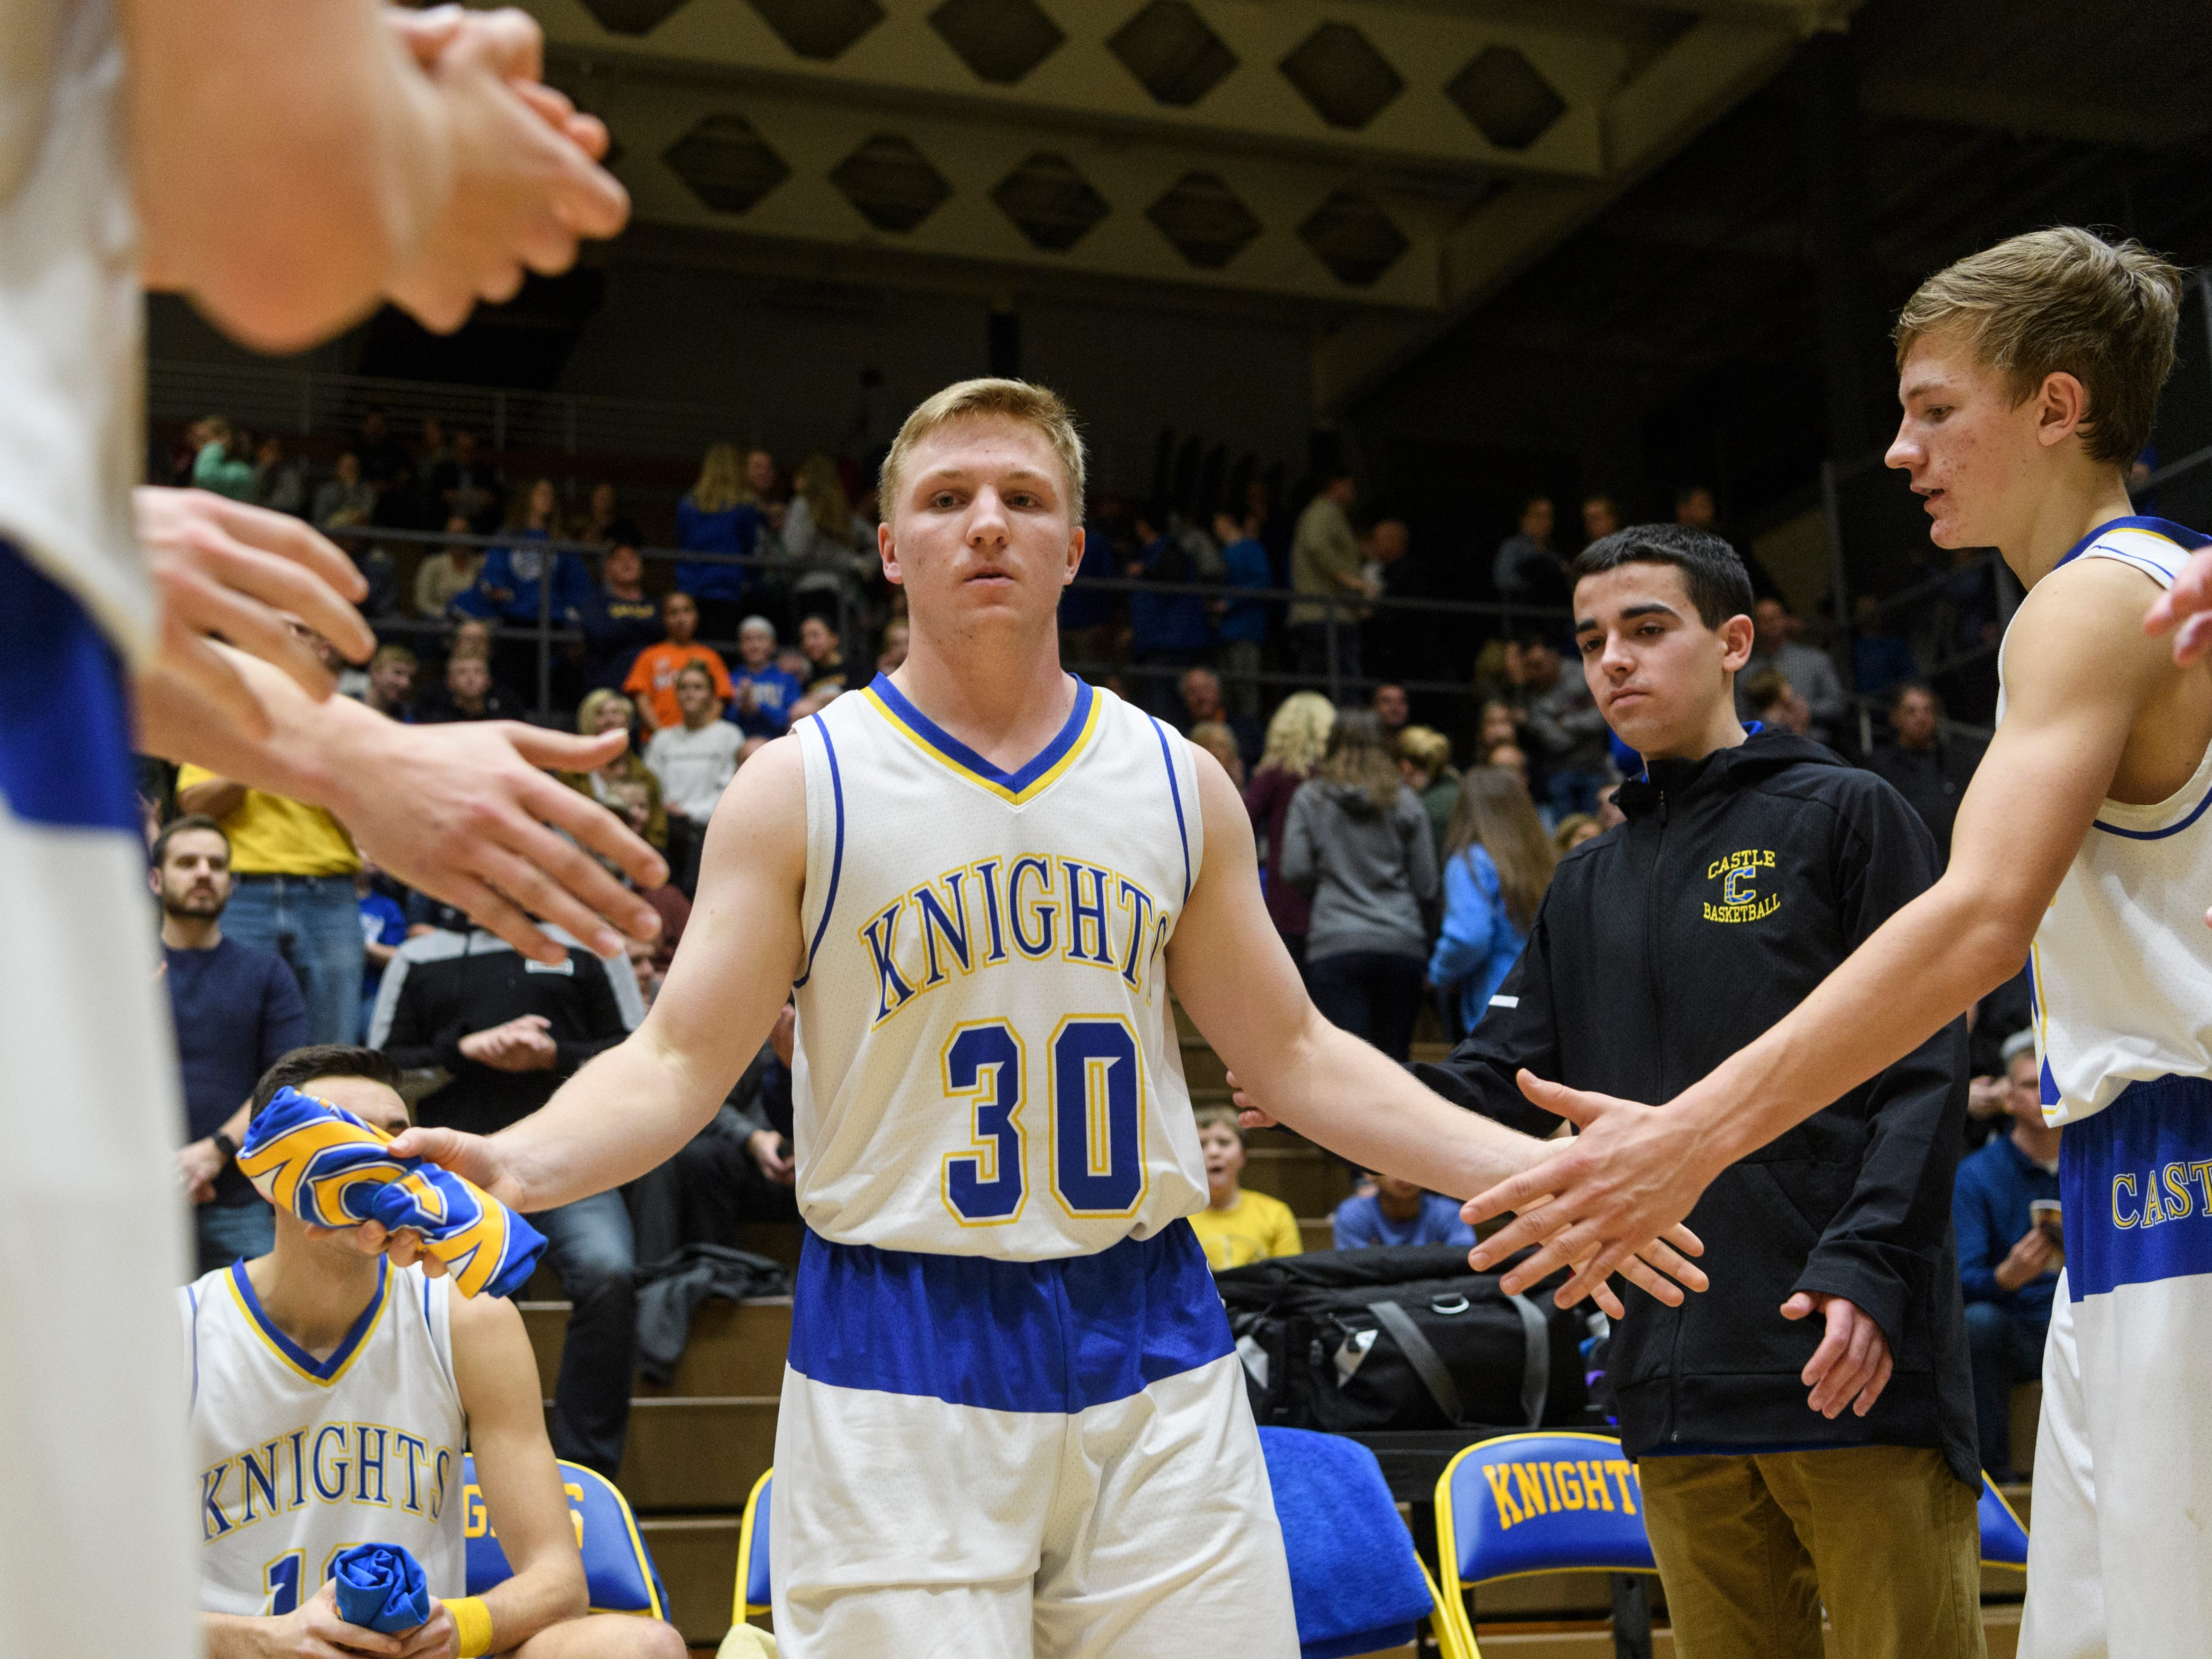 Castle's Brycen Moore (30) is announced as a starter before the game against the Memorial Tigers at Castle High School in Newburgh, Ind., Friday, Jan. 4, 2019. The Knights defeated the Tigers, 72-43.